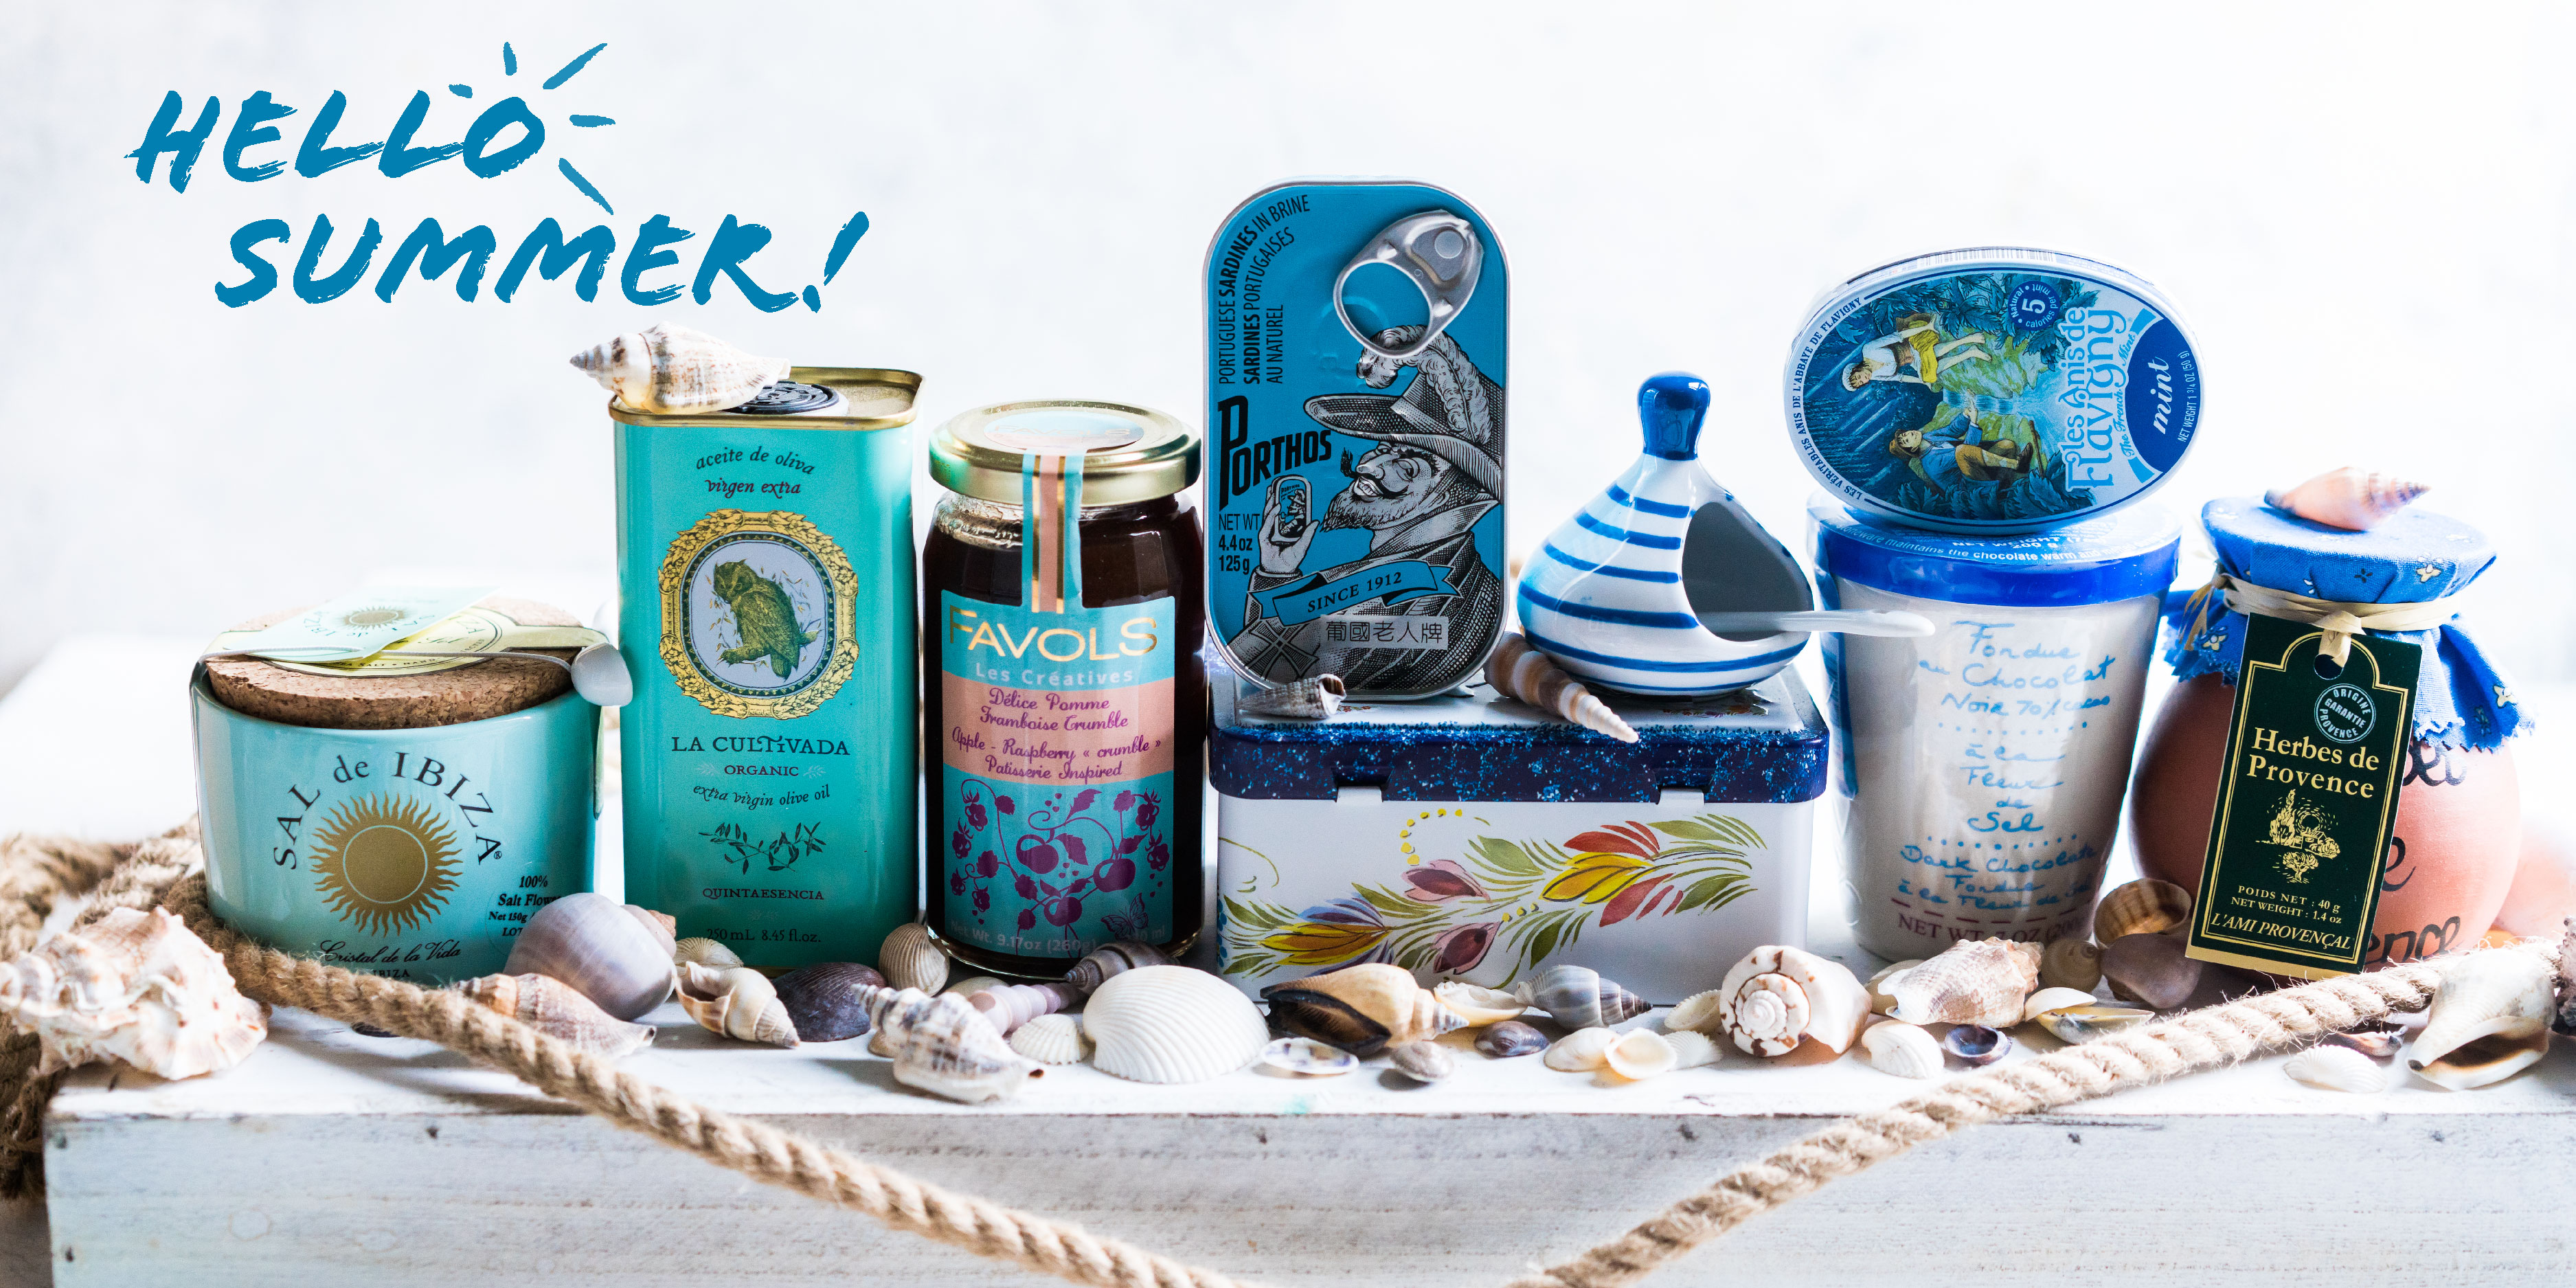 Summer essentials, French beach, european items surrounded by sea shells